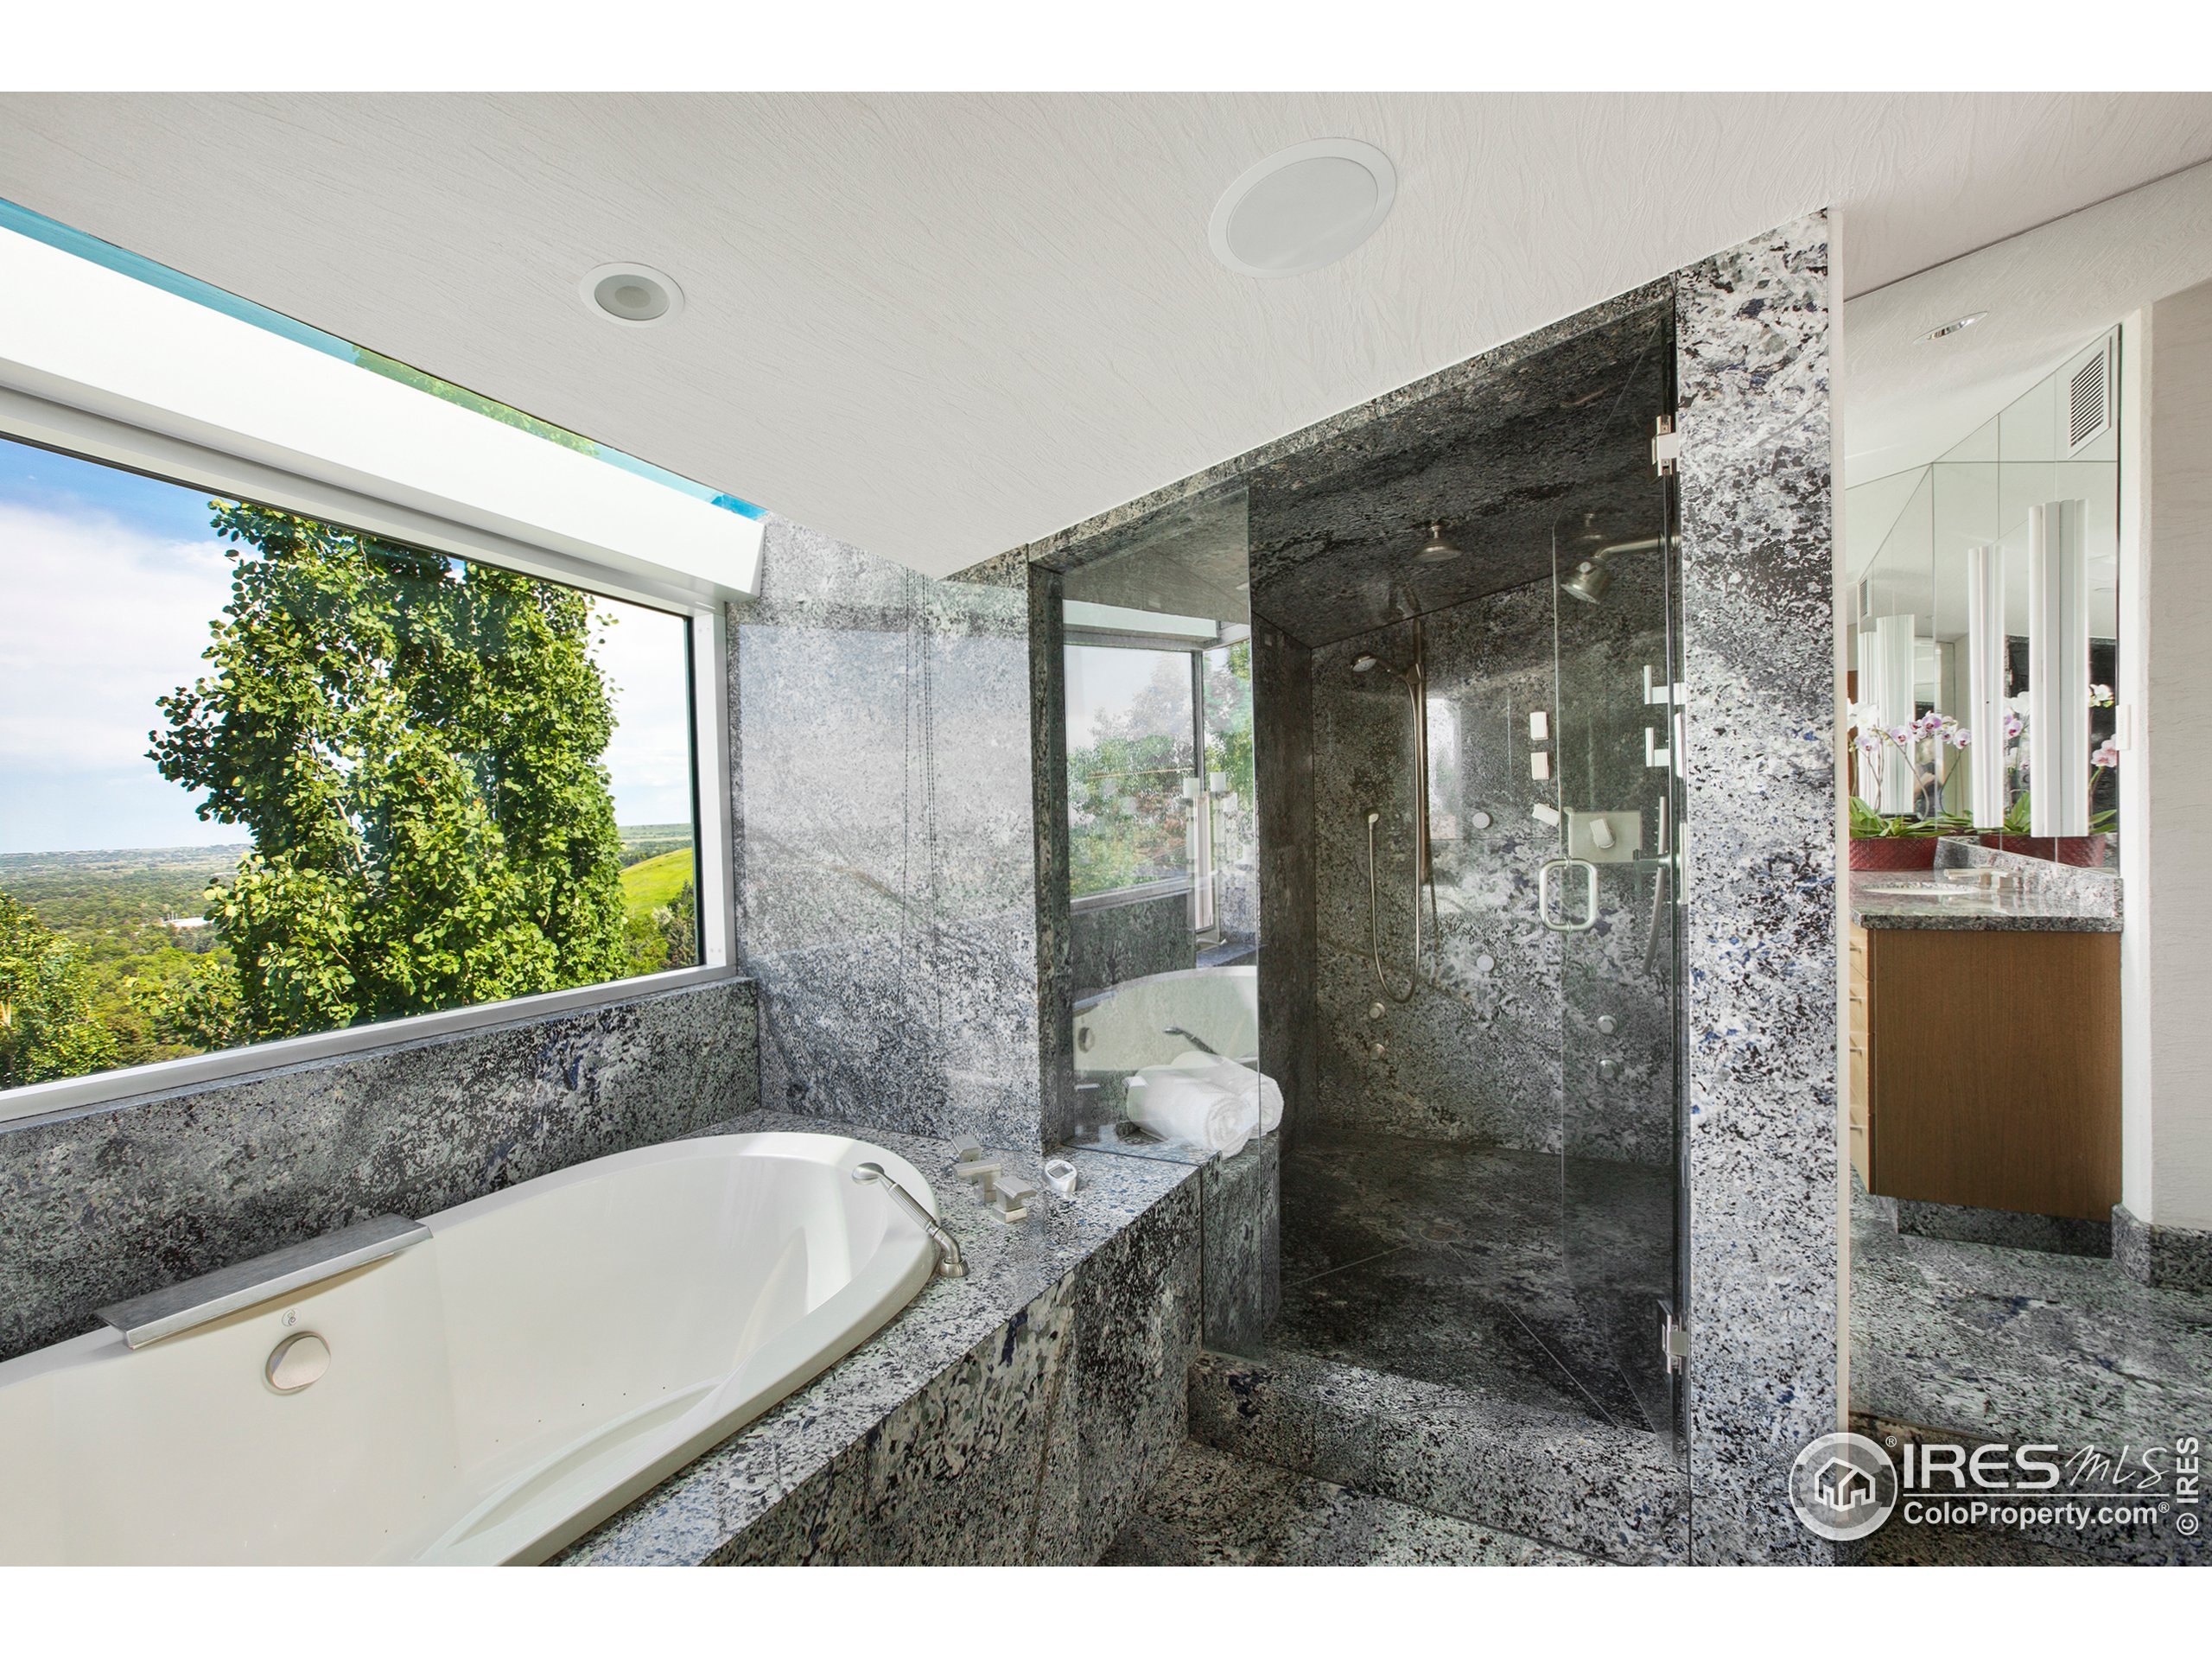 Jetted Tub and Steam Shower